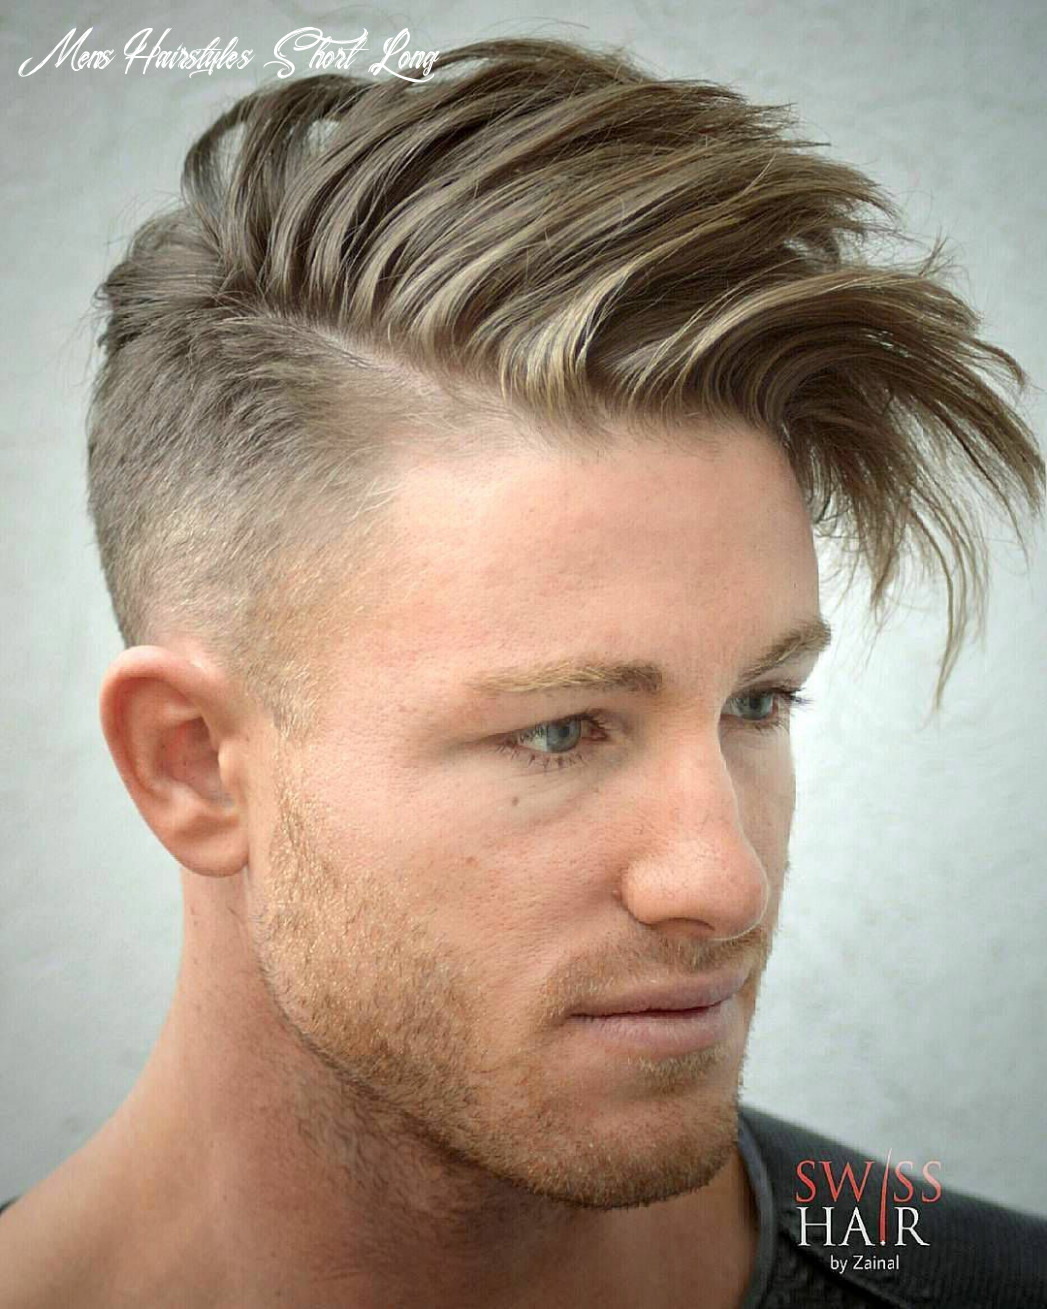 Swisshairbyzainal and short sides and long hair on top   mens